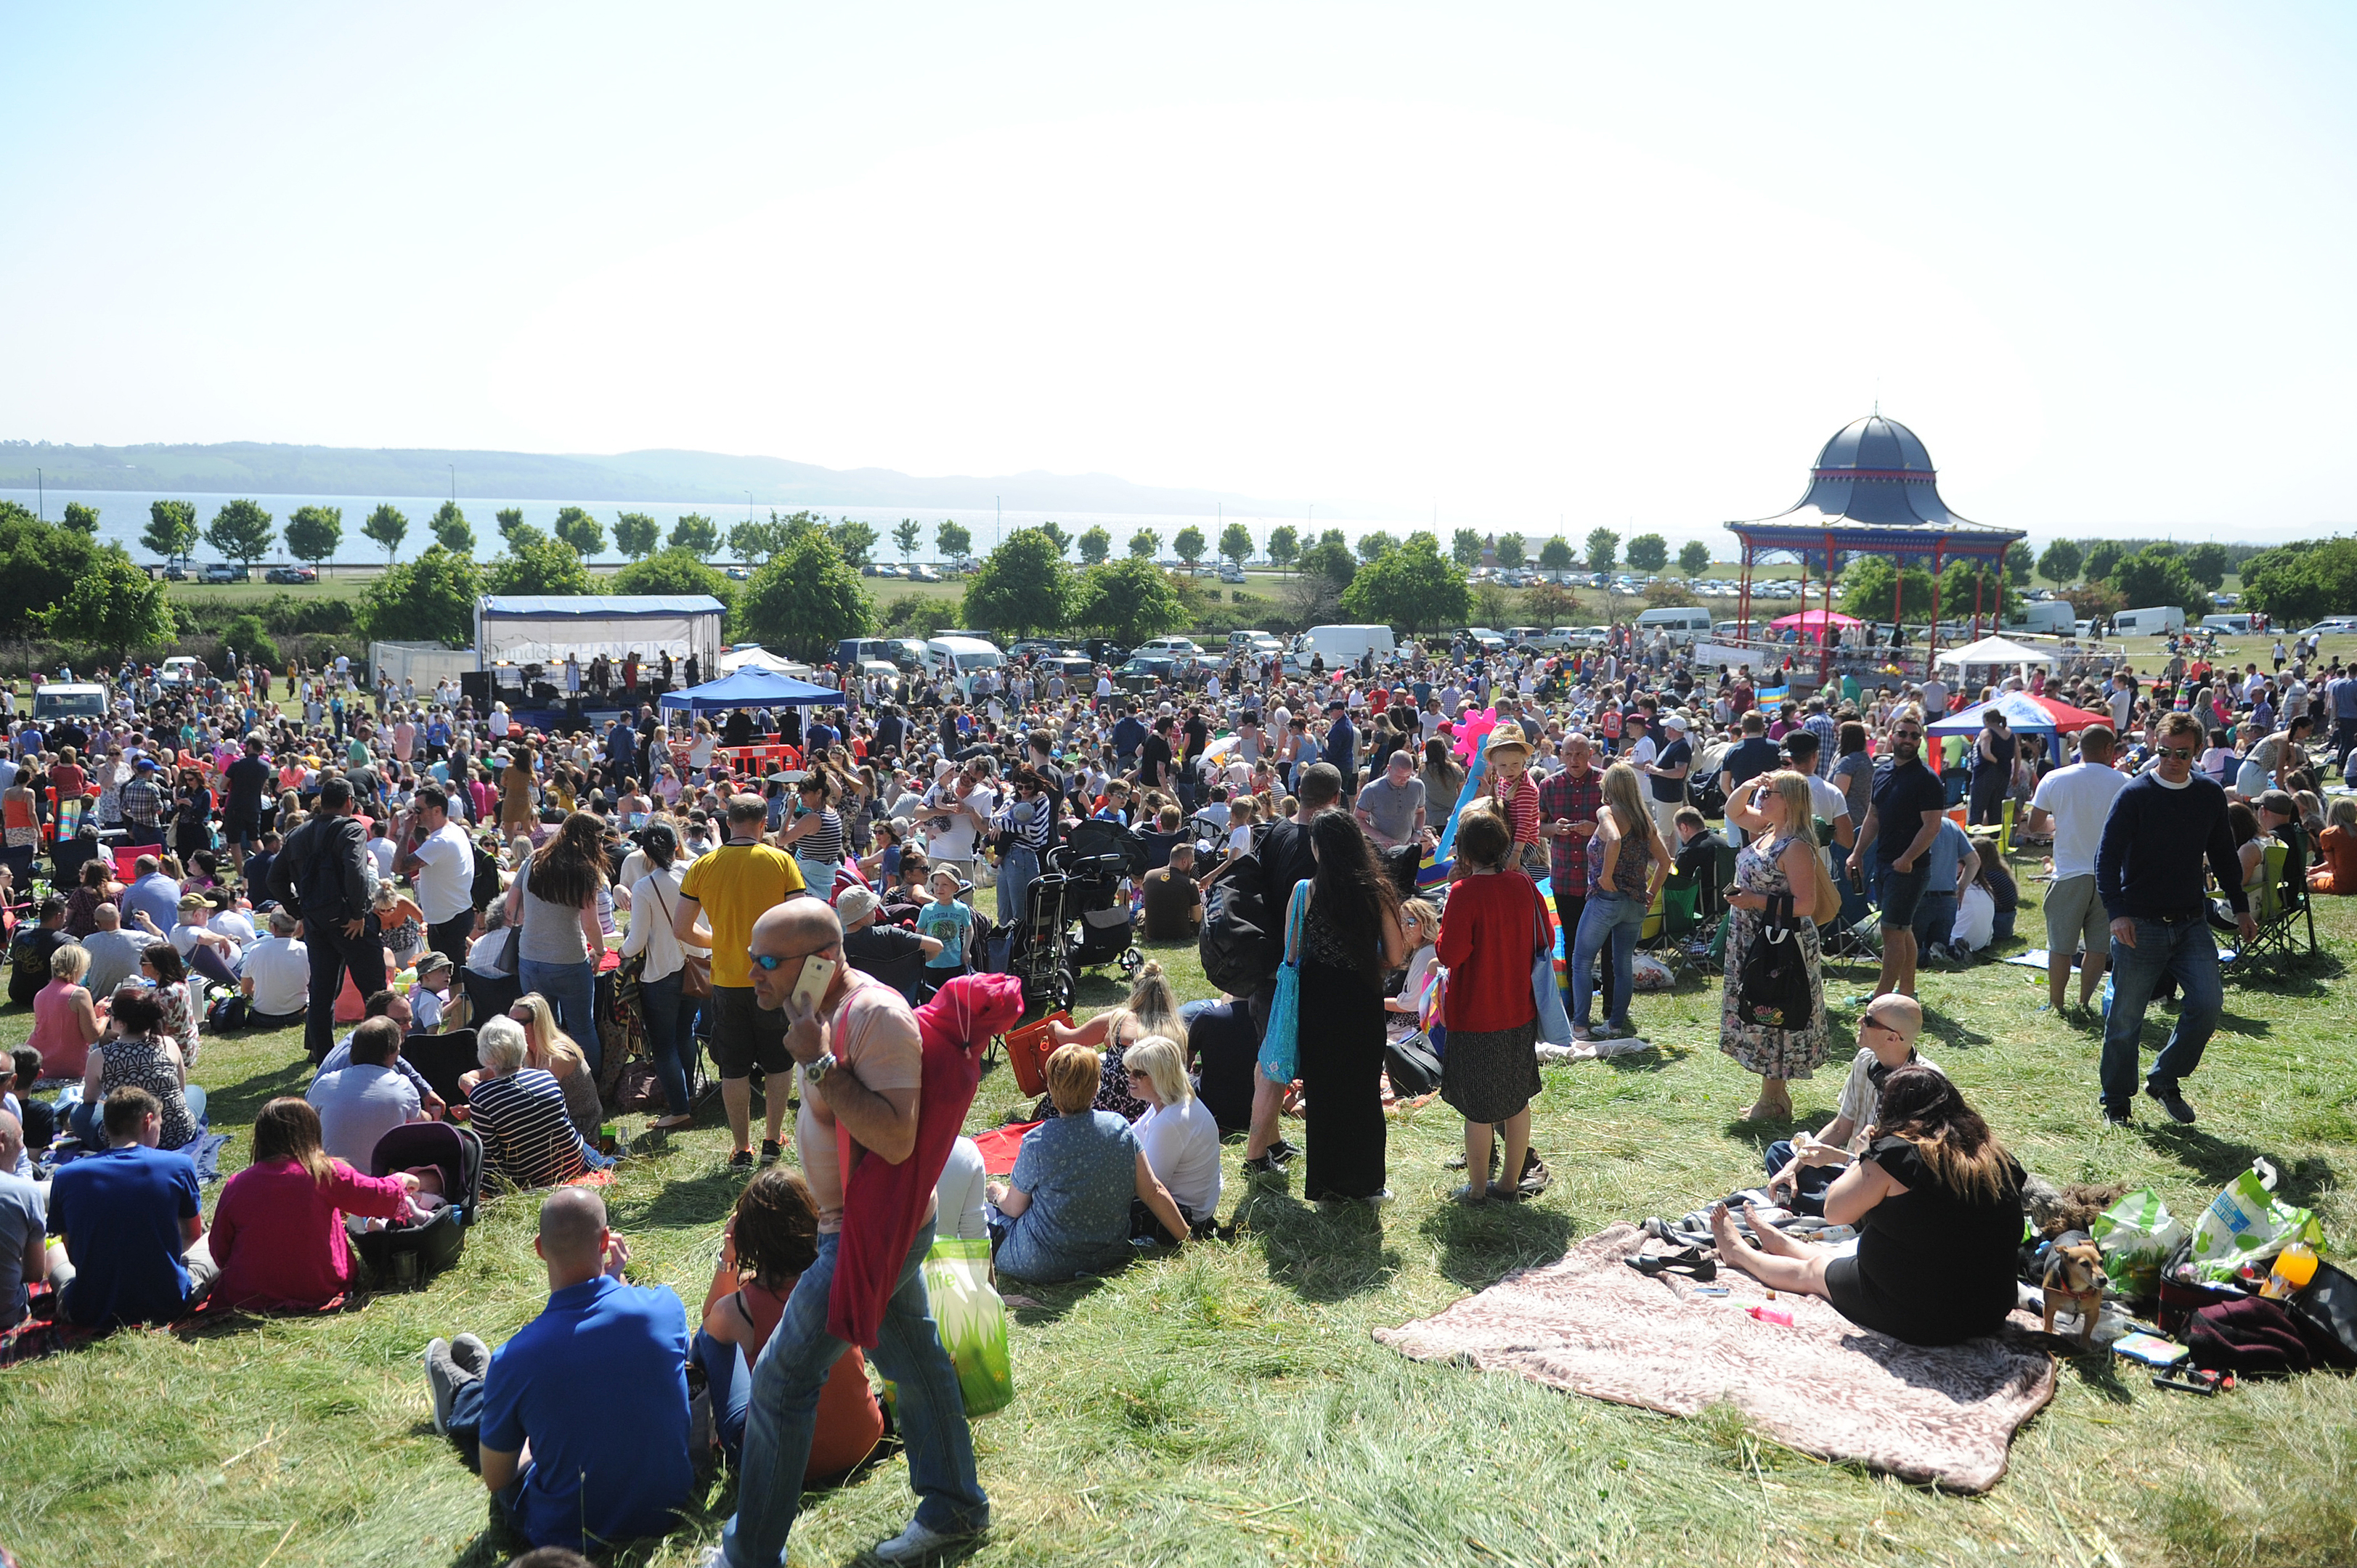 Last year's Westfest attracted a 10,000 strong crowd.